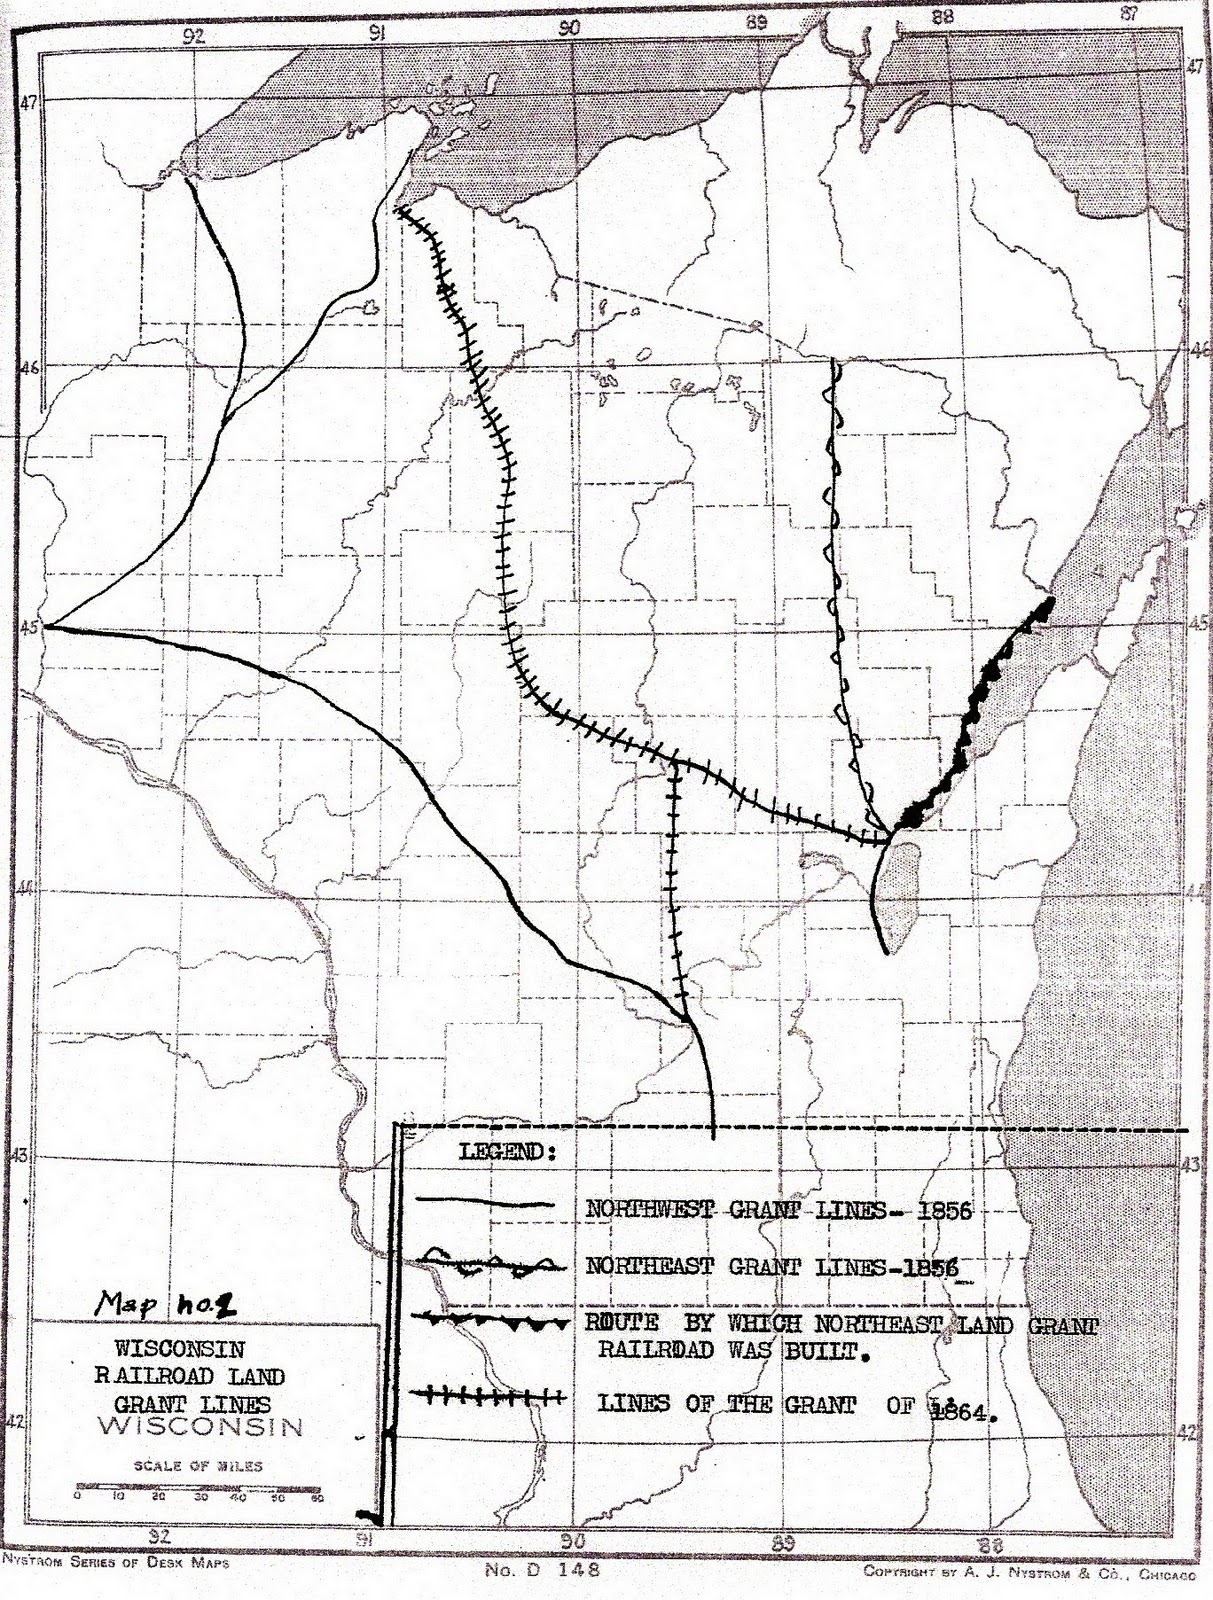 map from unpublished master s thesis by greiner gordon oswald wisconsin national railroad land grants thesis m s university of wisconsin madison